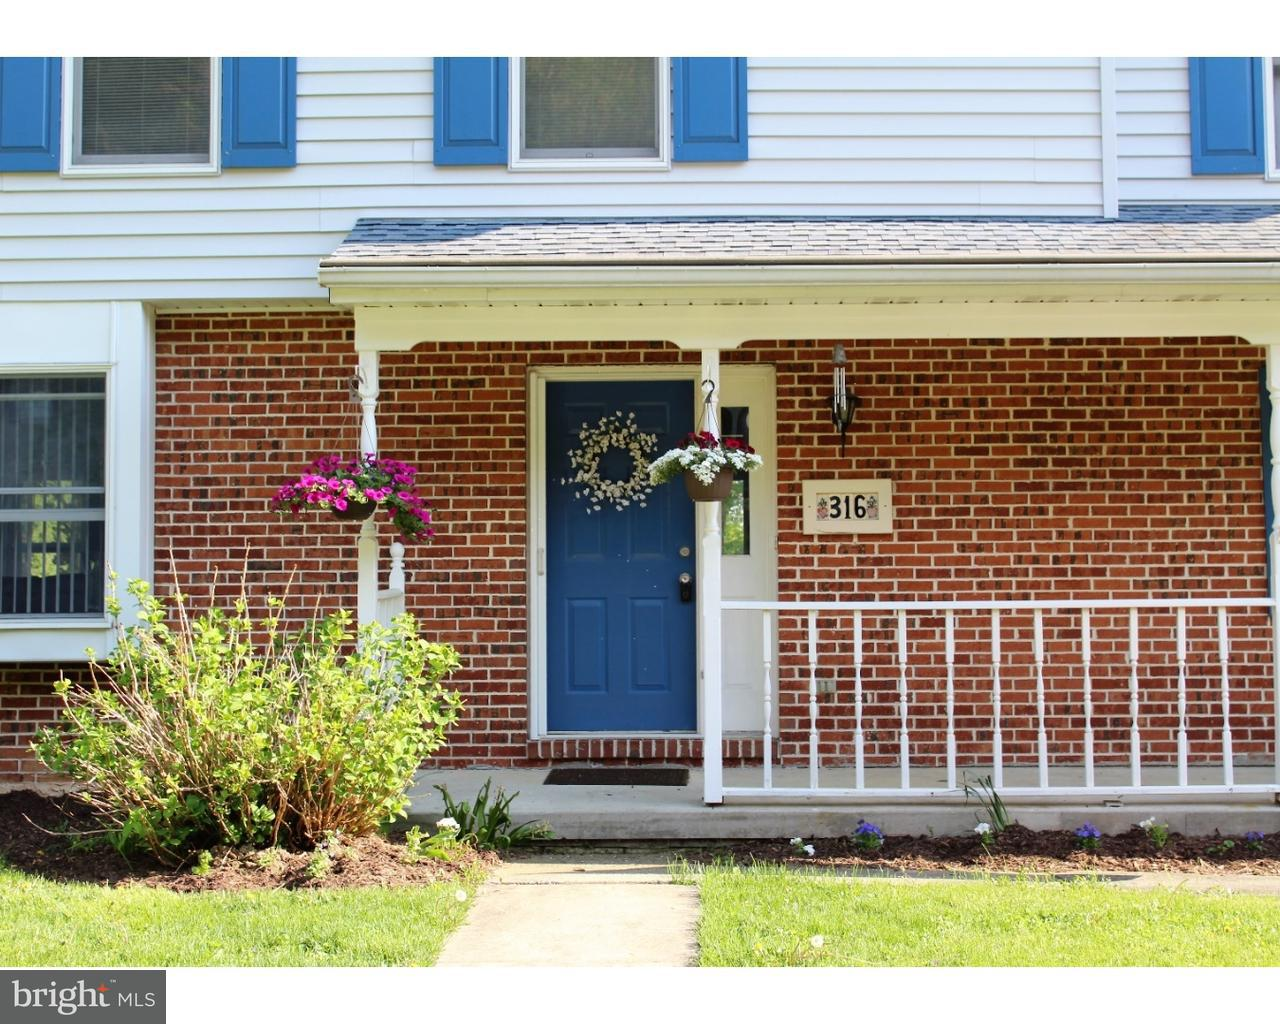 316 LEVAN ST, READING - Listed at $248,900, READING